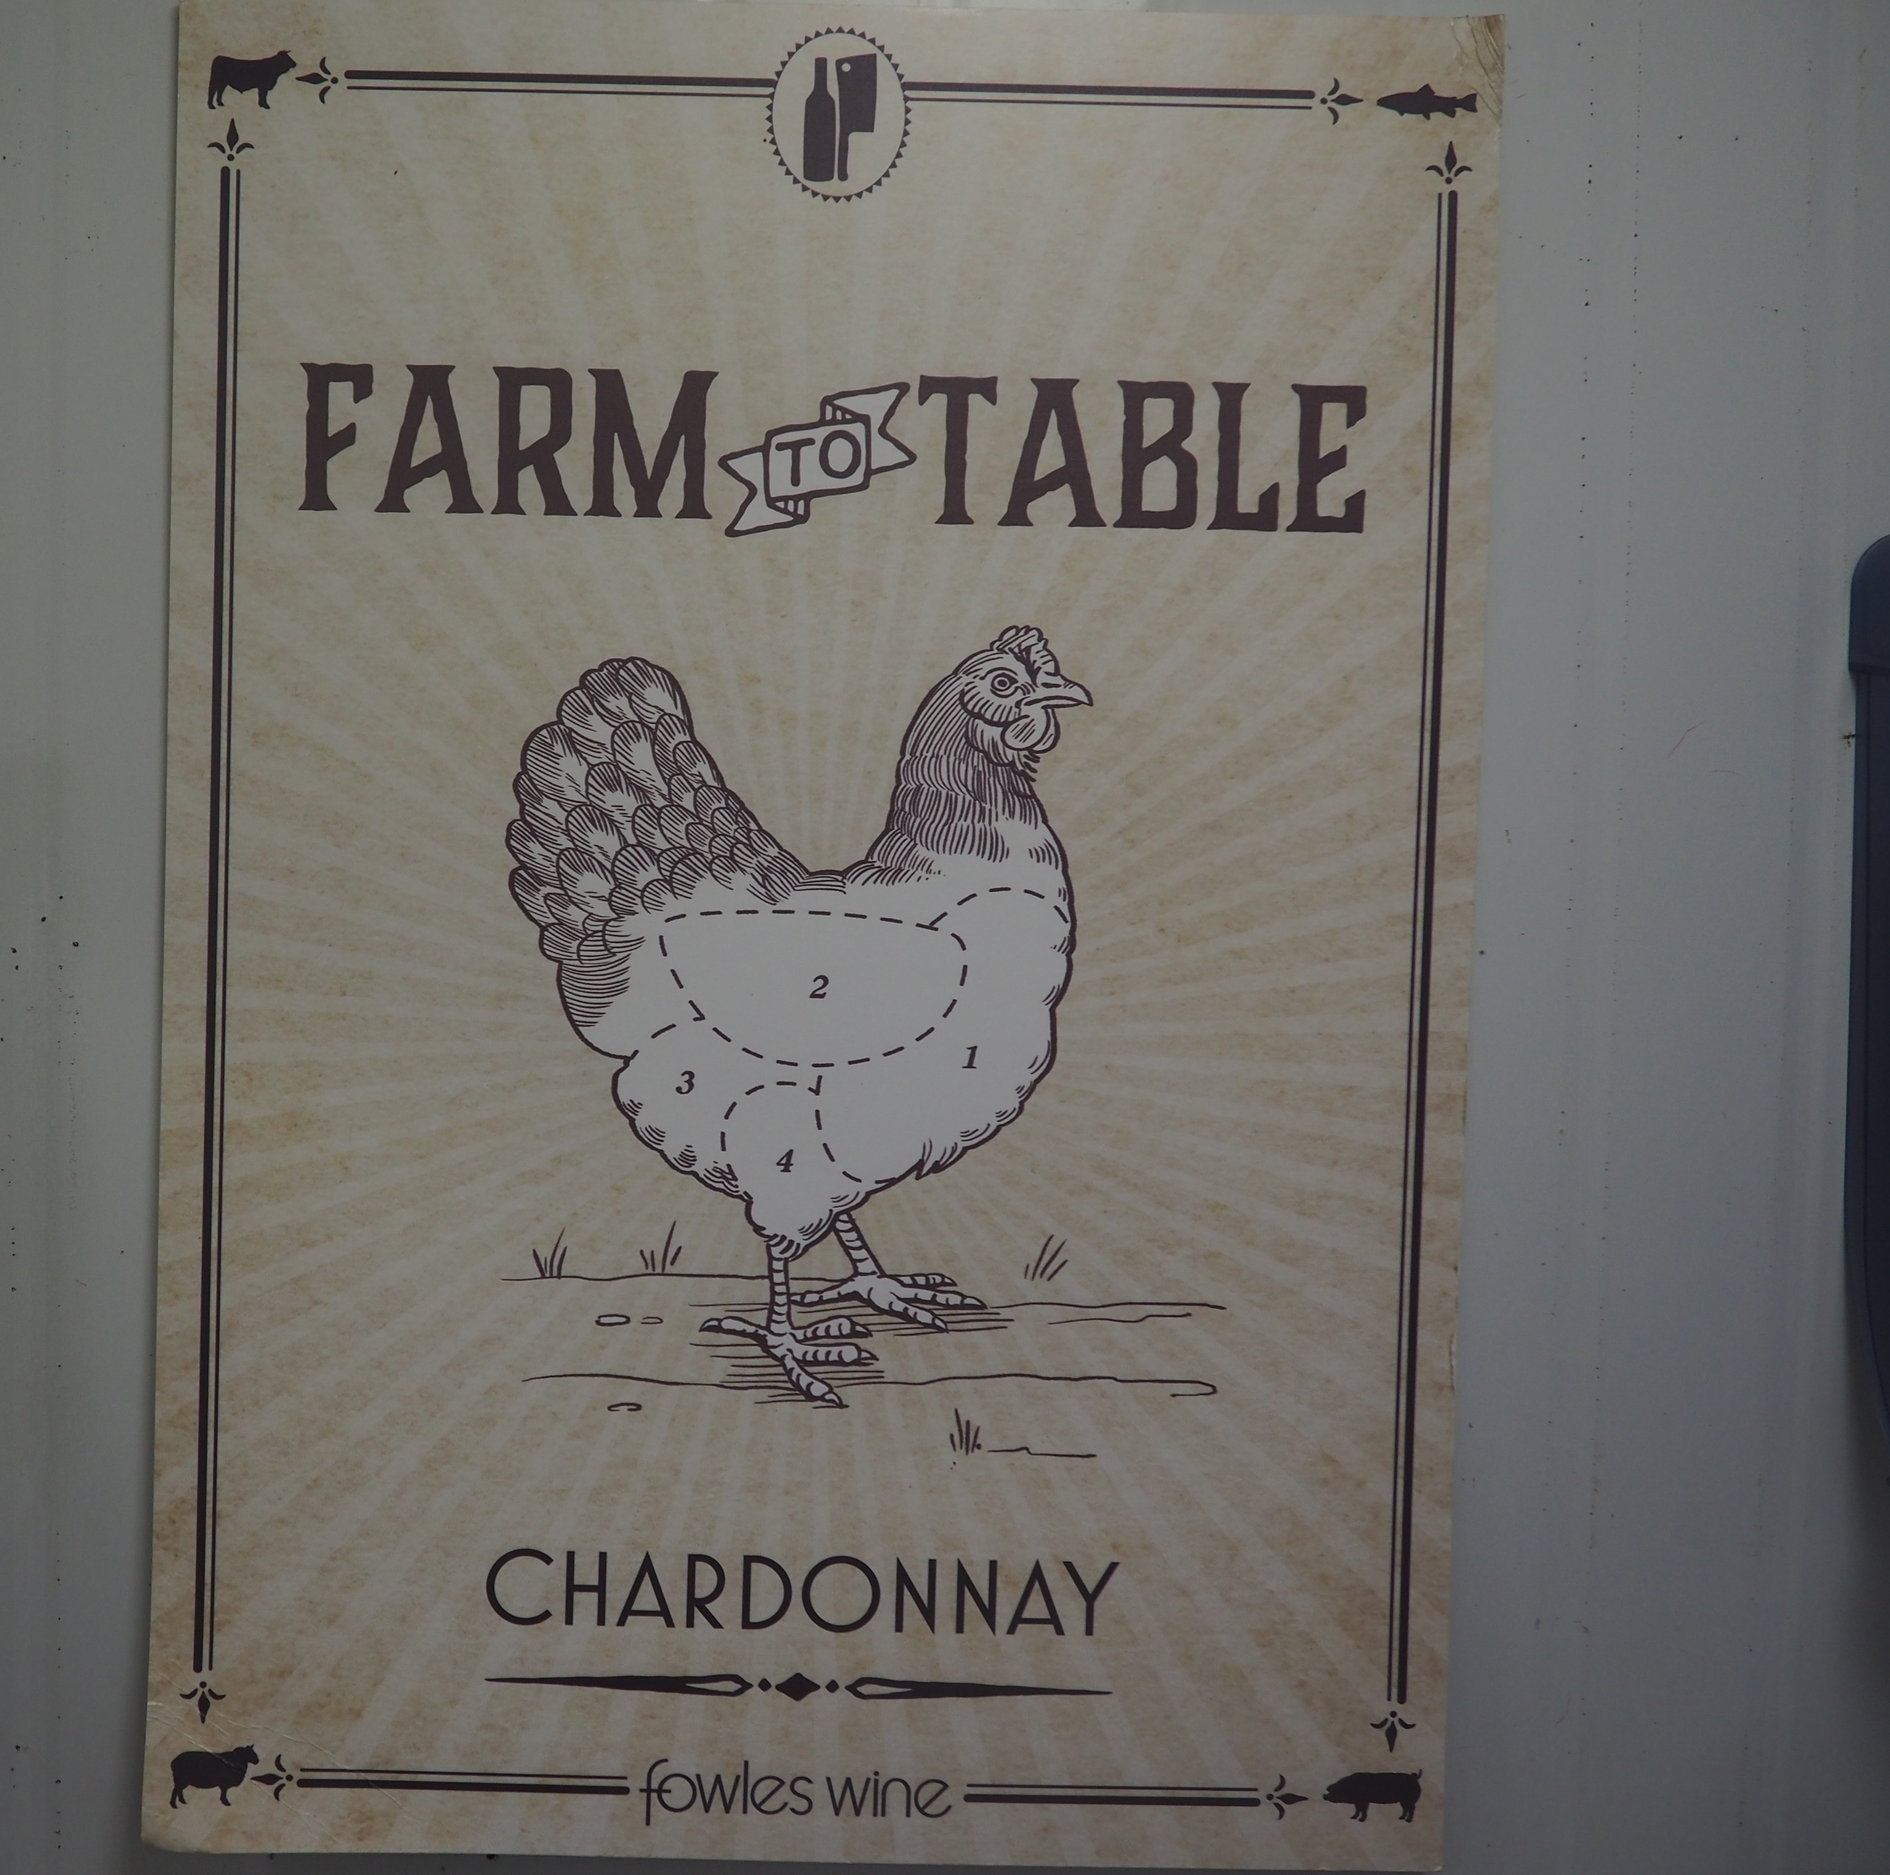 The shed a - Farm to table.JPG